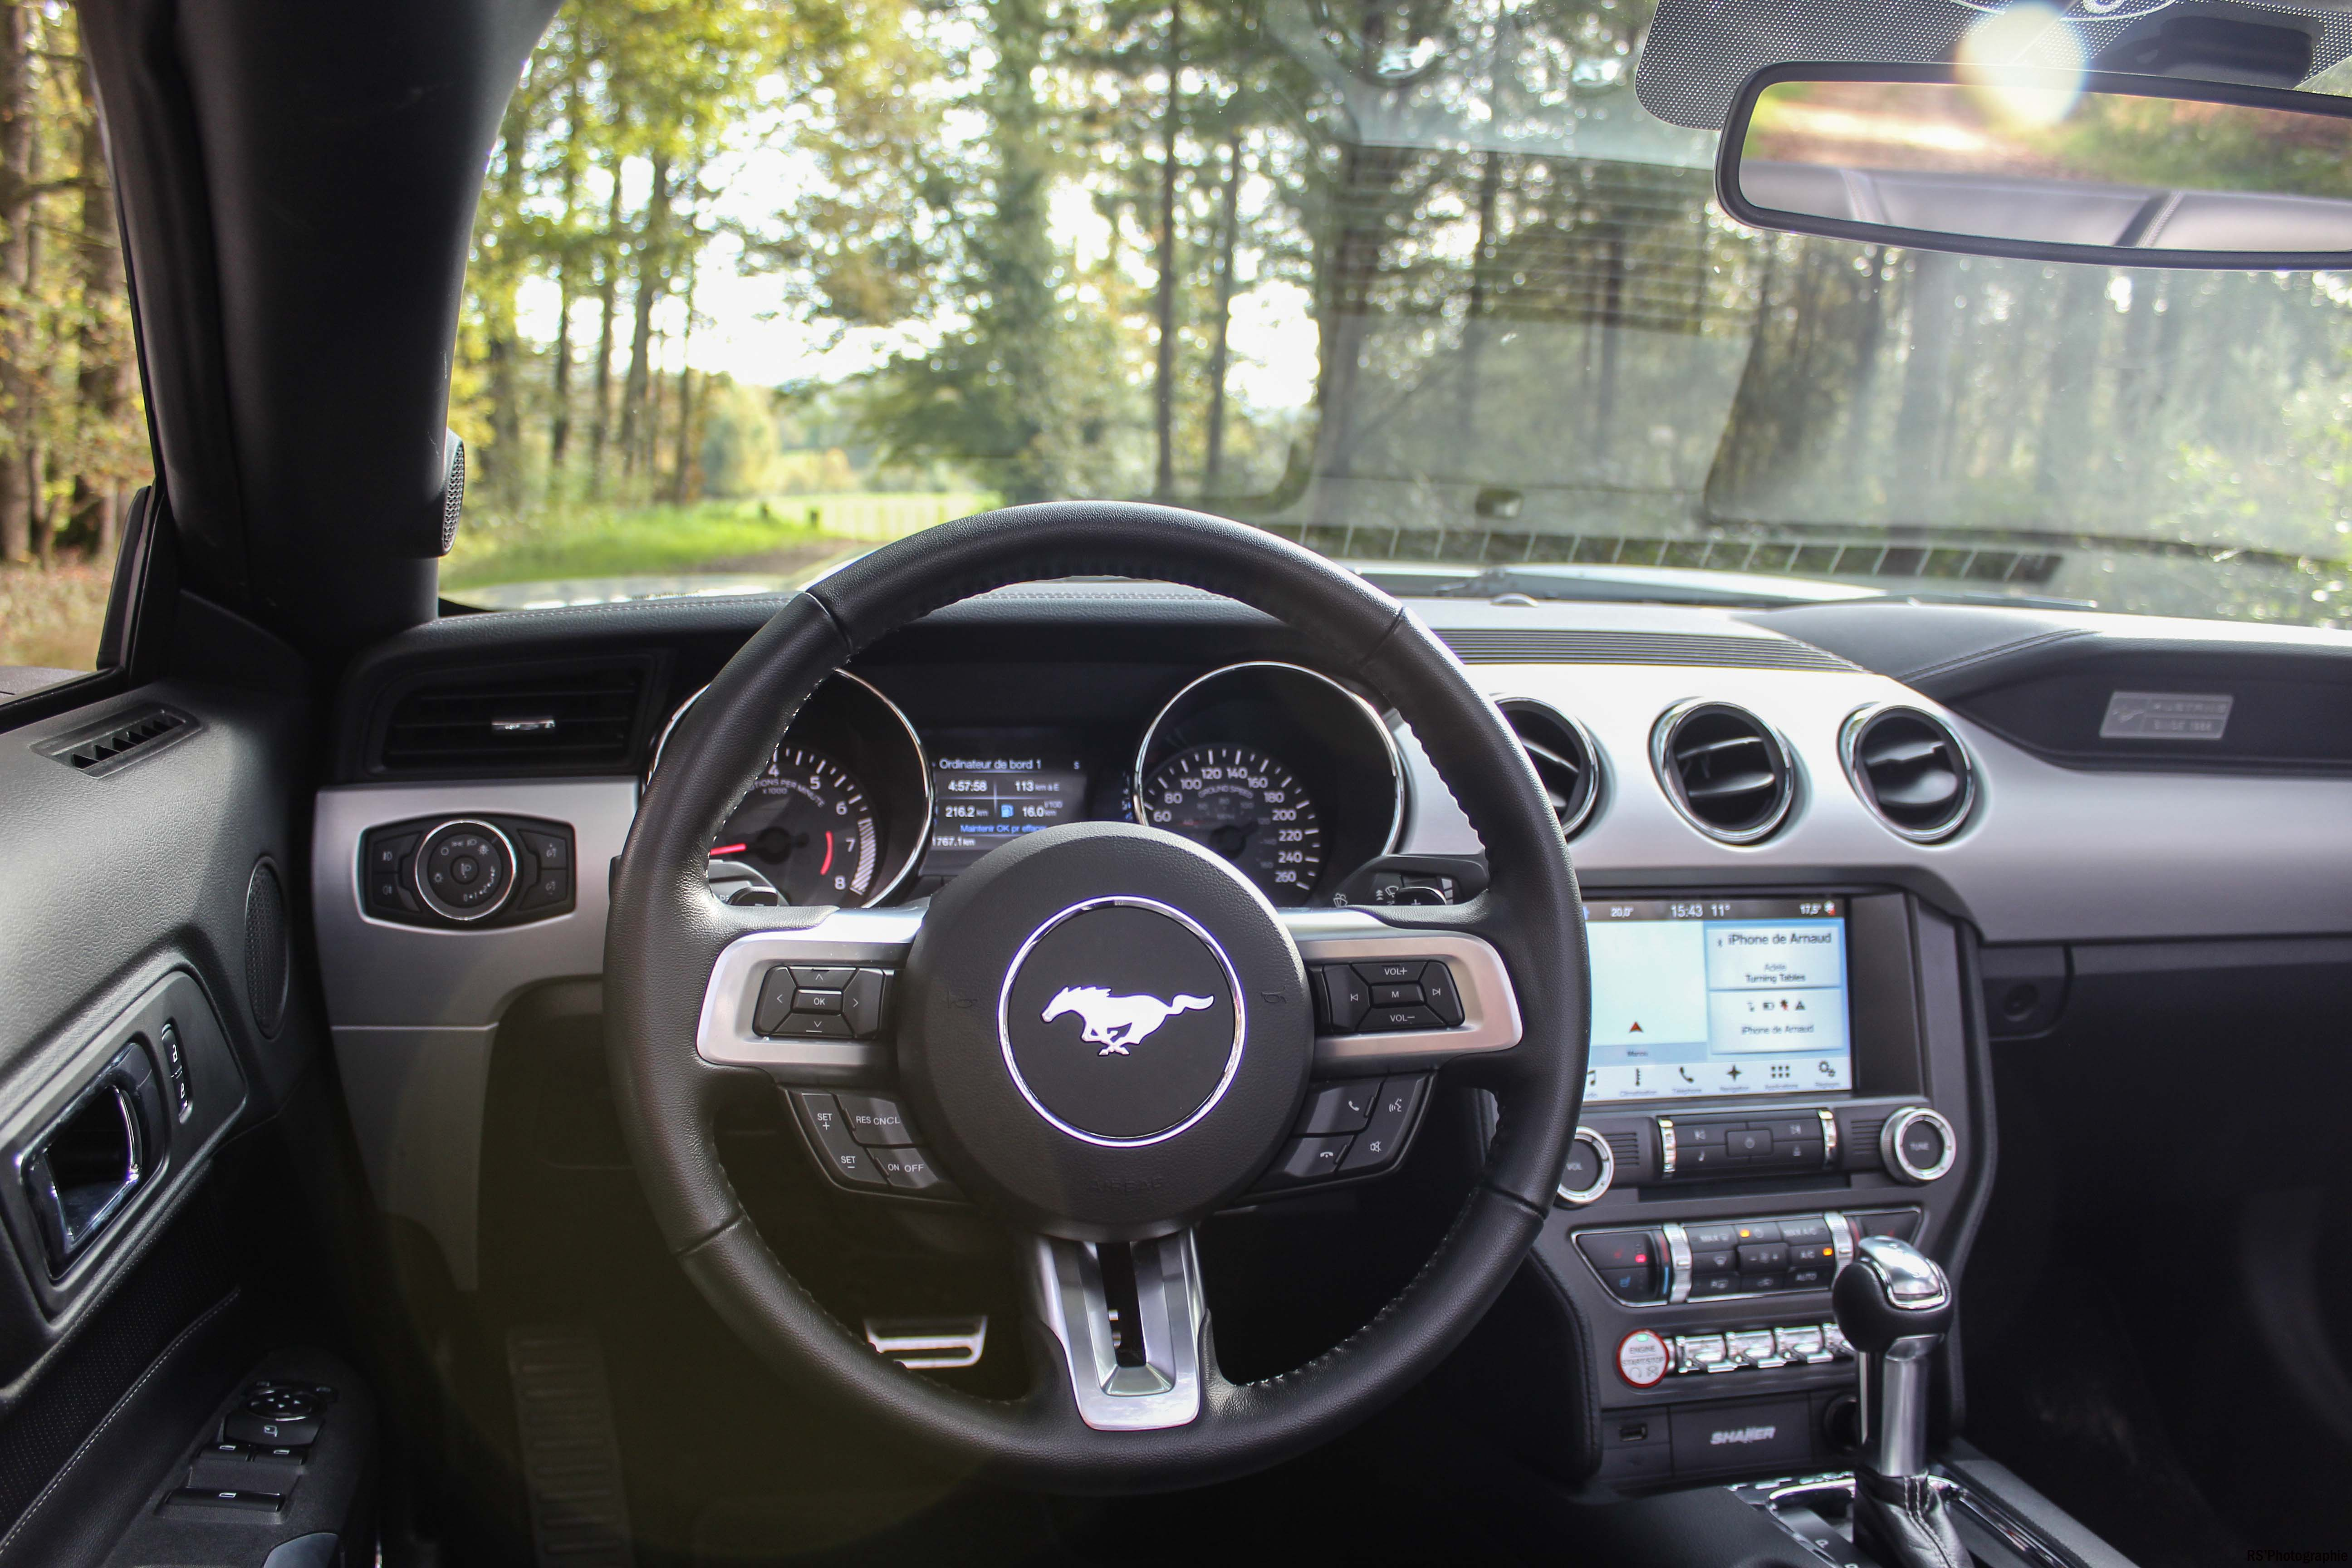 fordmustangeconvertible52-ford-mustang-convertible-ecoboost-intérieur-onboard-Arnaud Demasier-RSPhotographie